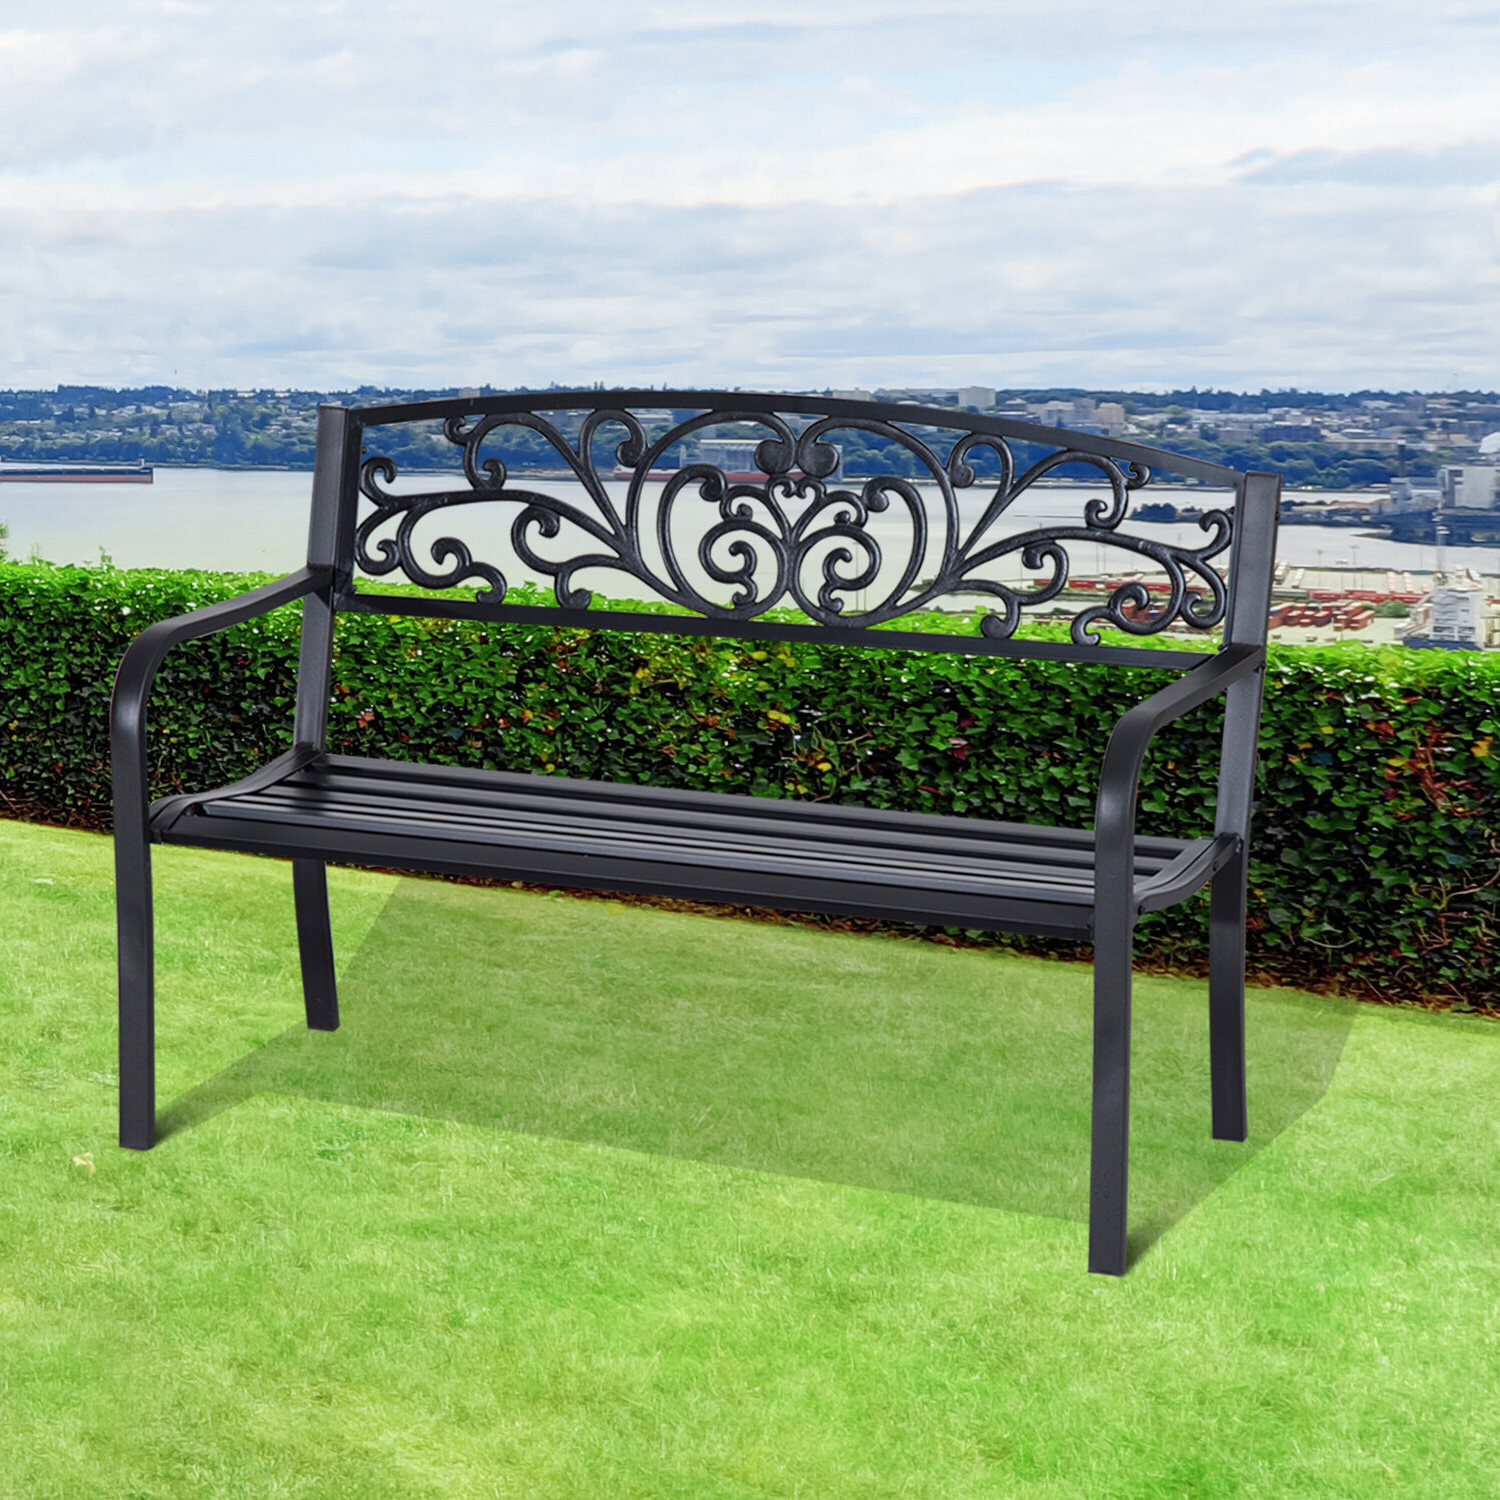 Wayfair Intended For Pauls Steel Garden Benches (View 4 of 30)